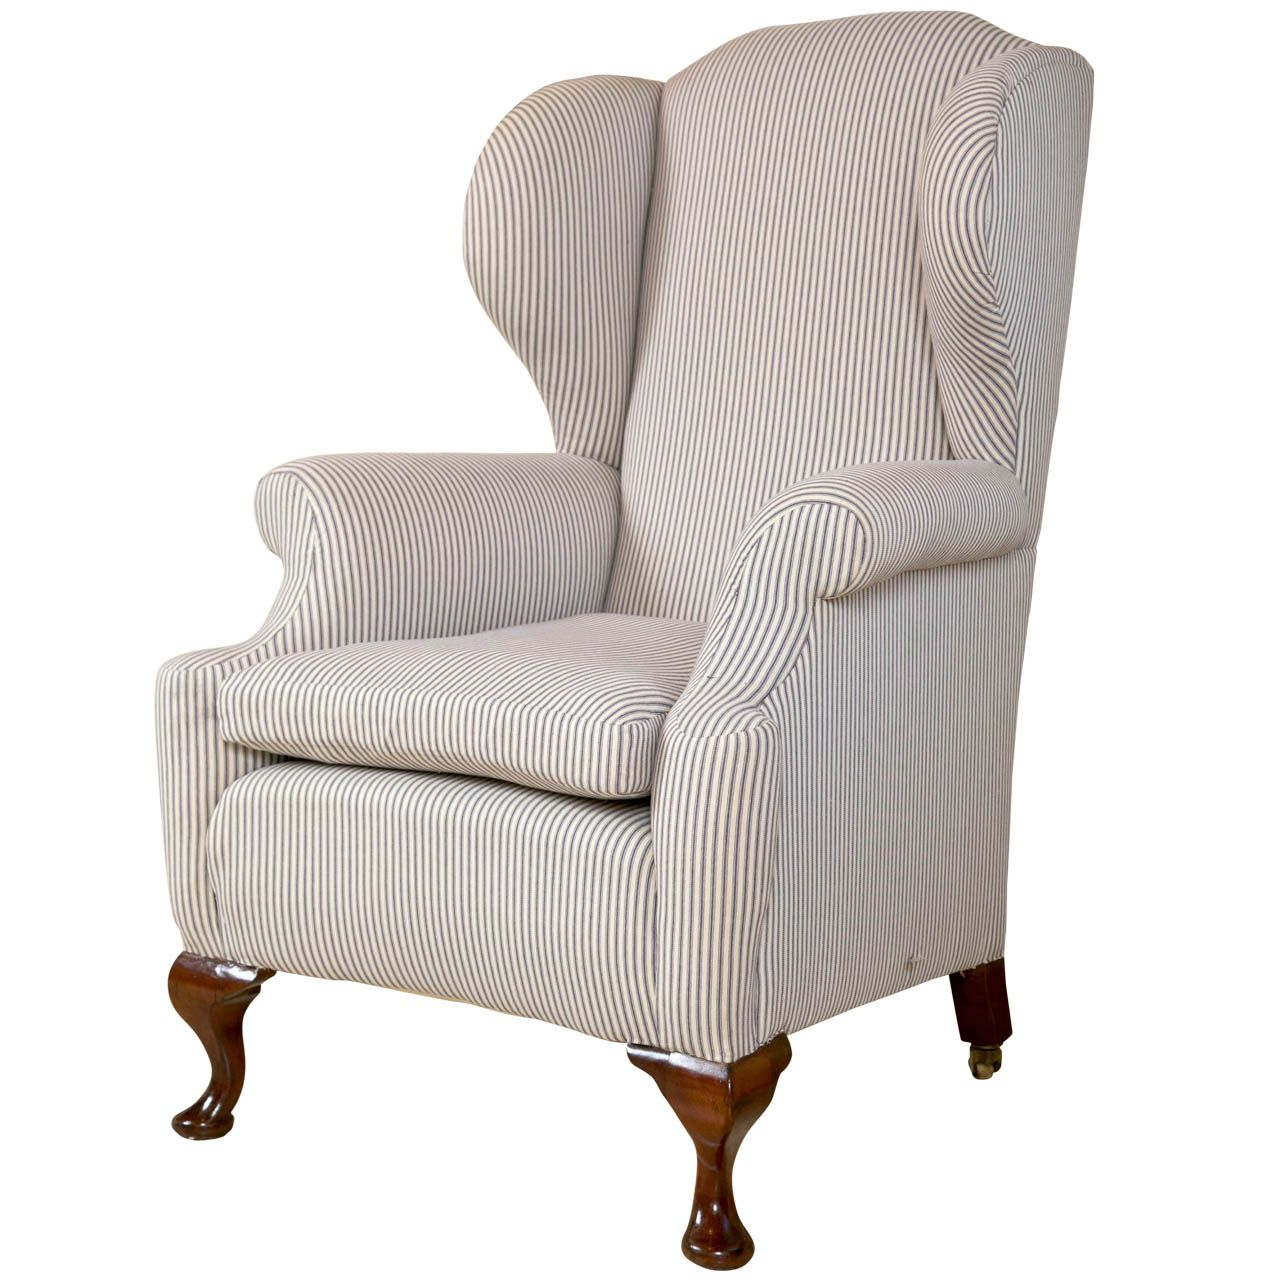 English Wing Back In Ticking Stripe Vintage Wingback Chair Wingback Chair Furniture